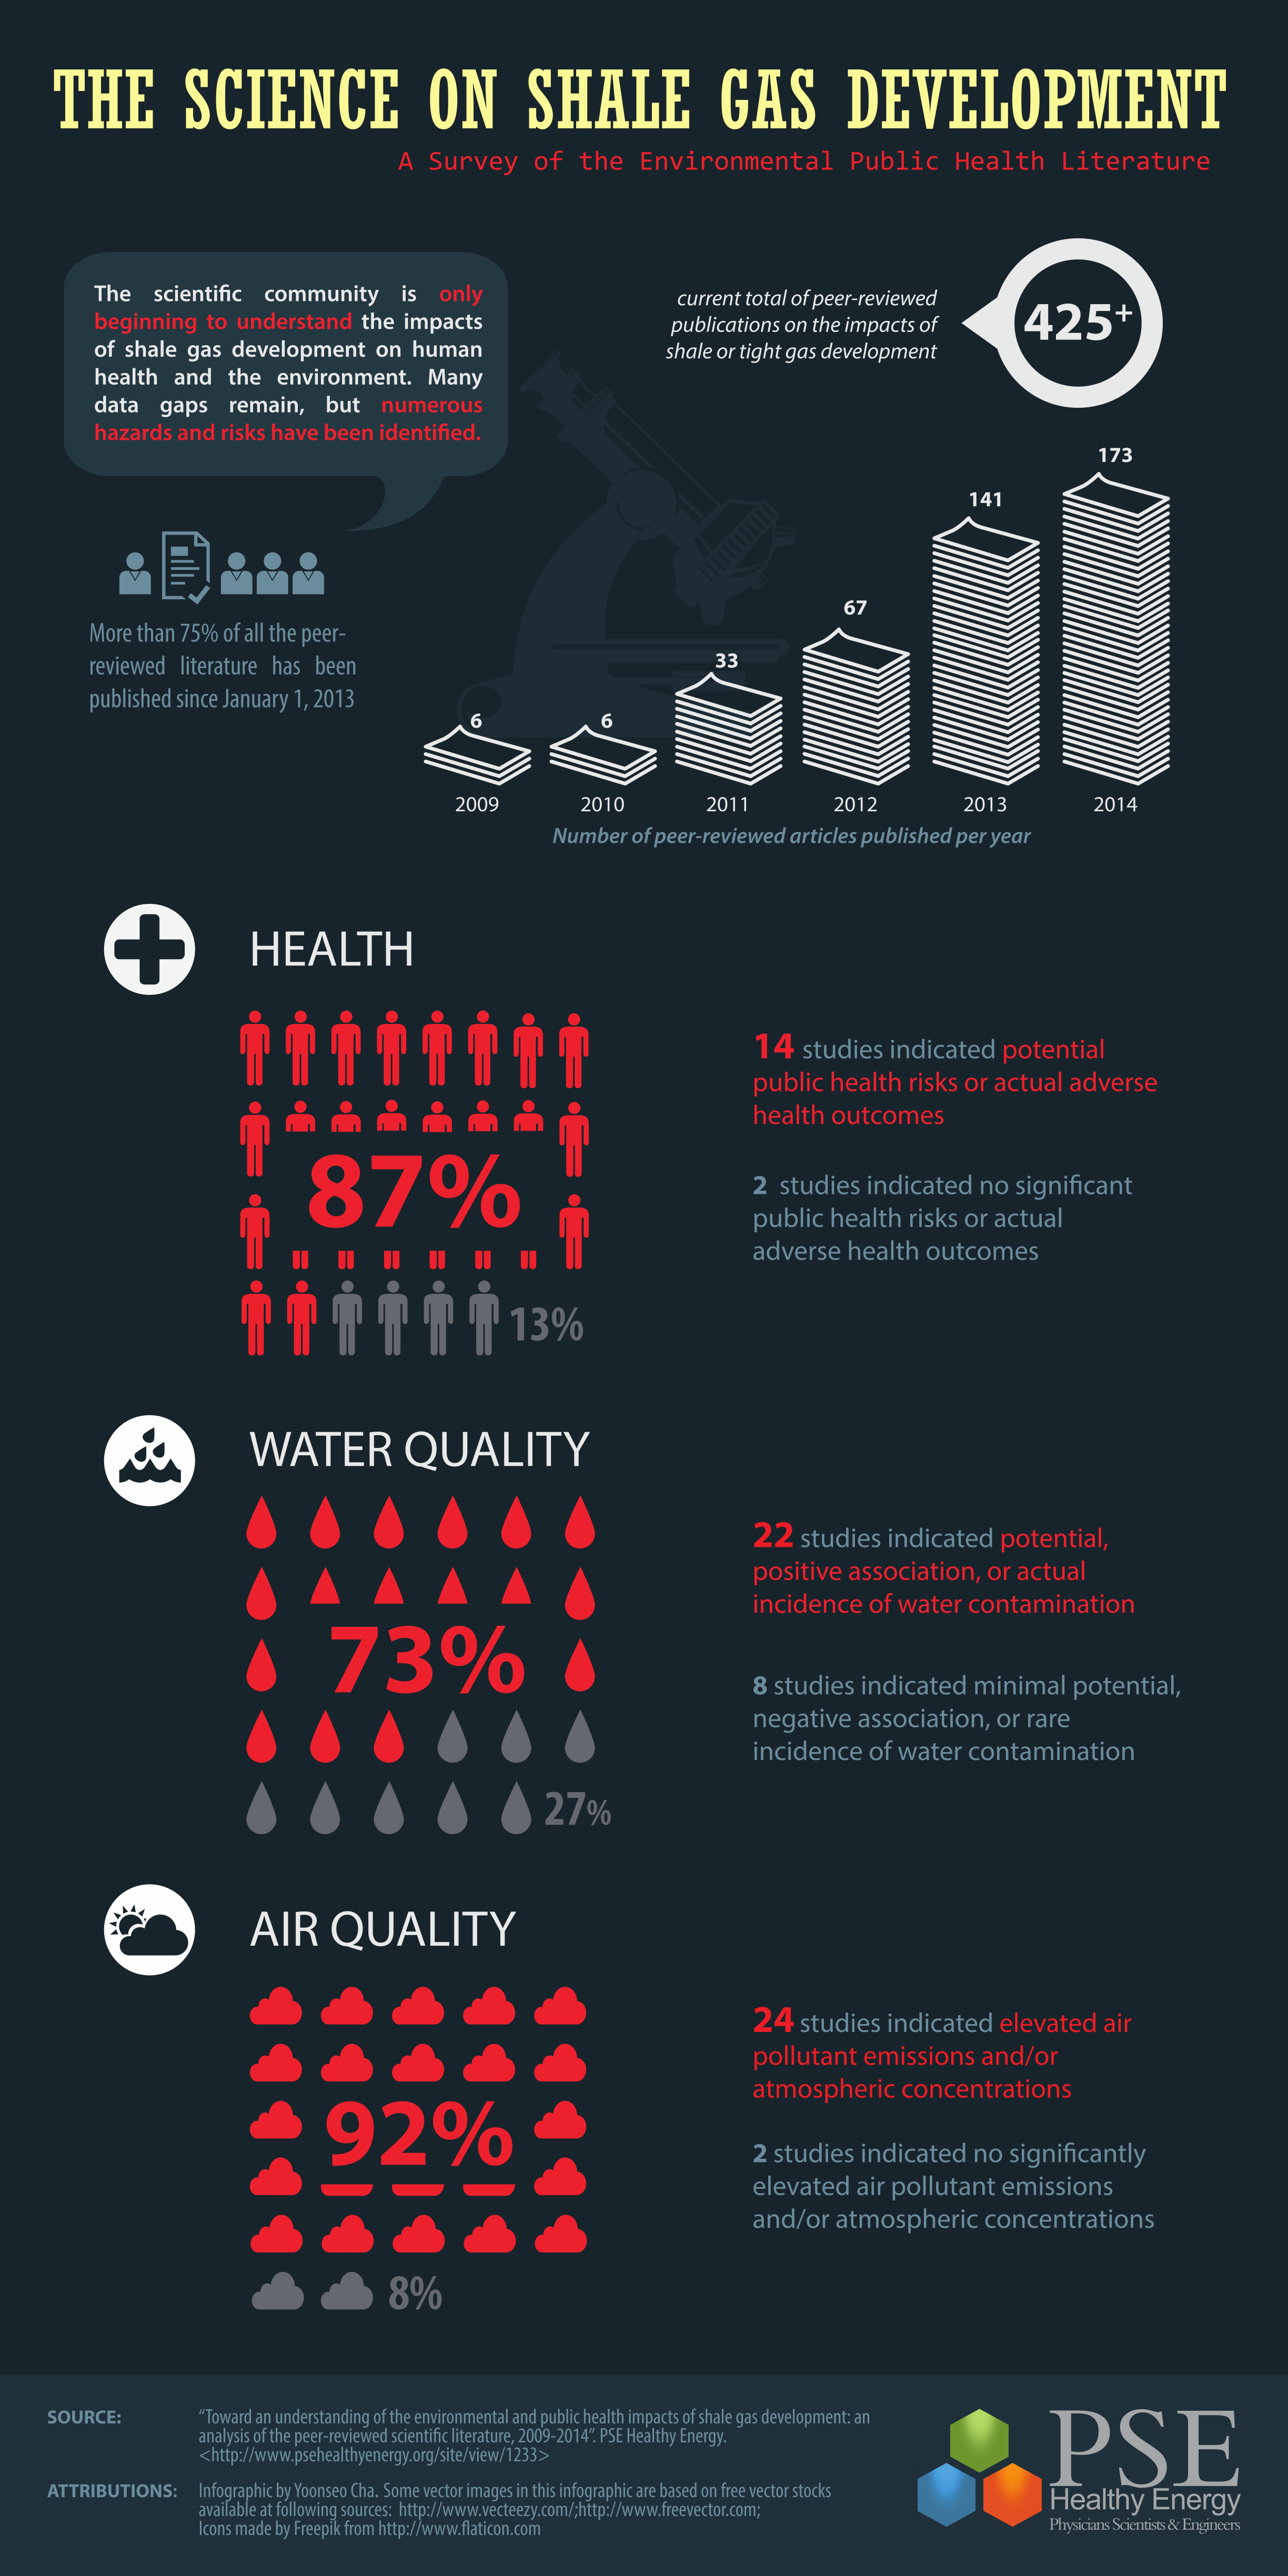 2015 02 04 PSE_Summary The science on shale gas development image